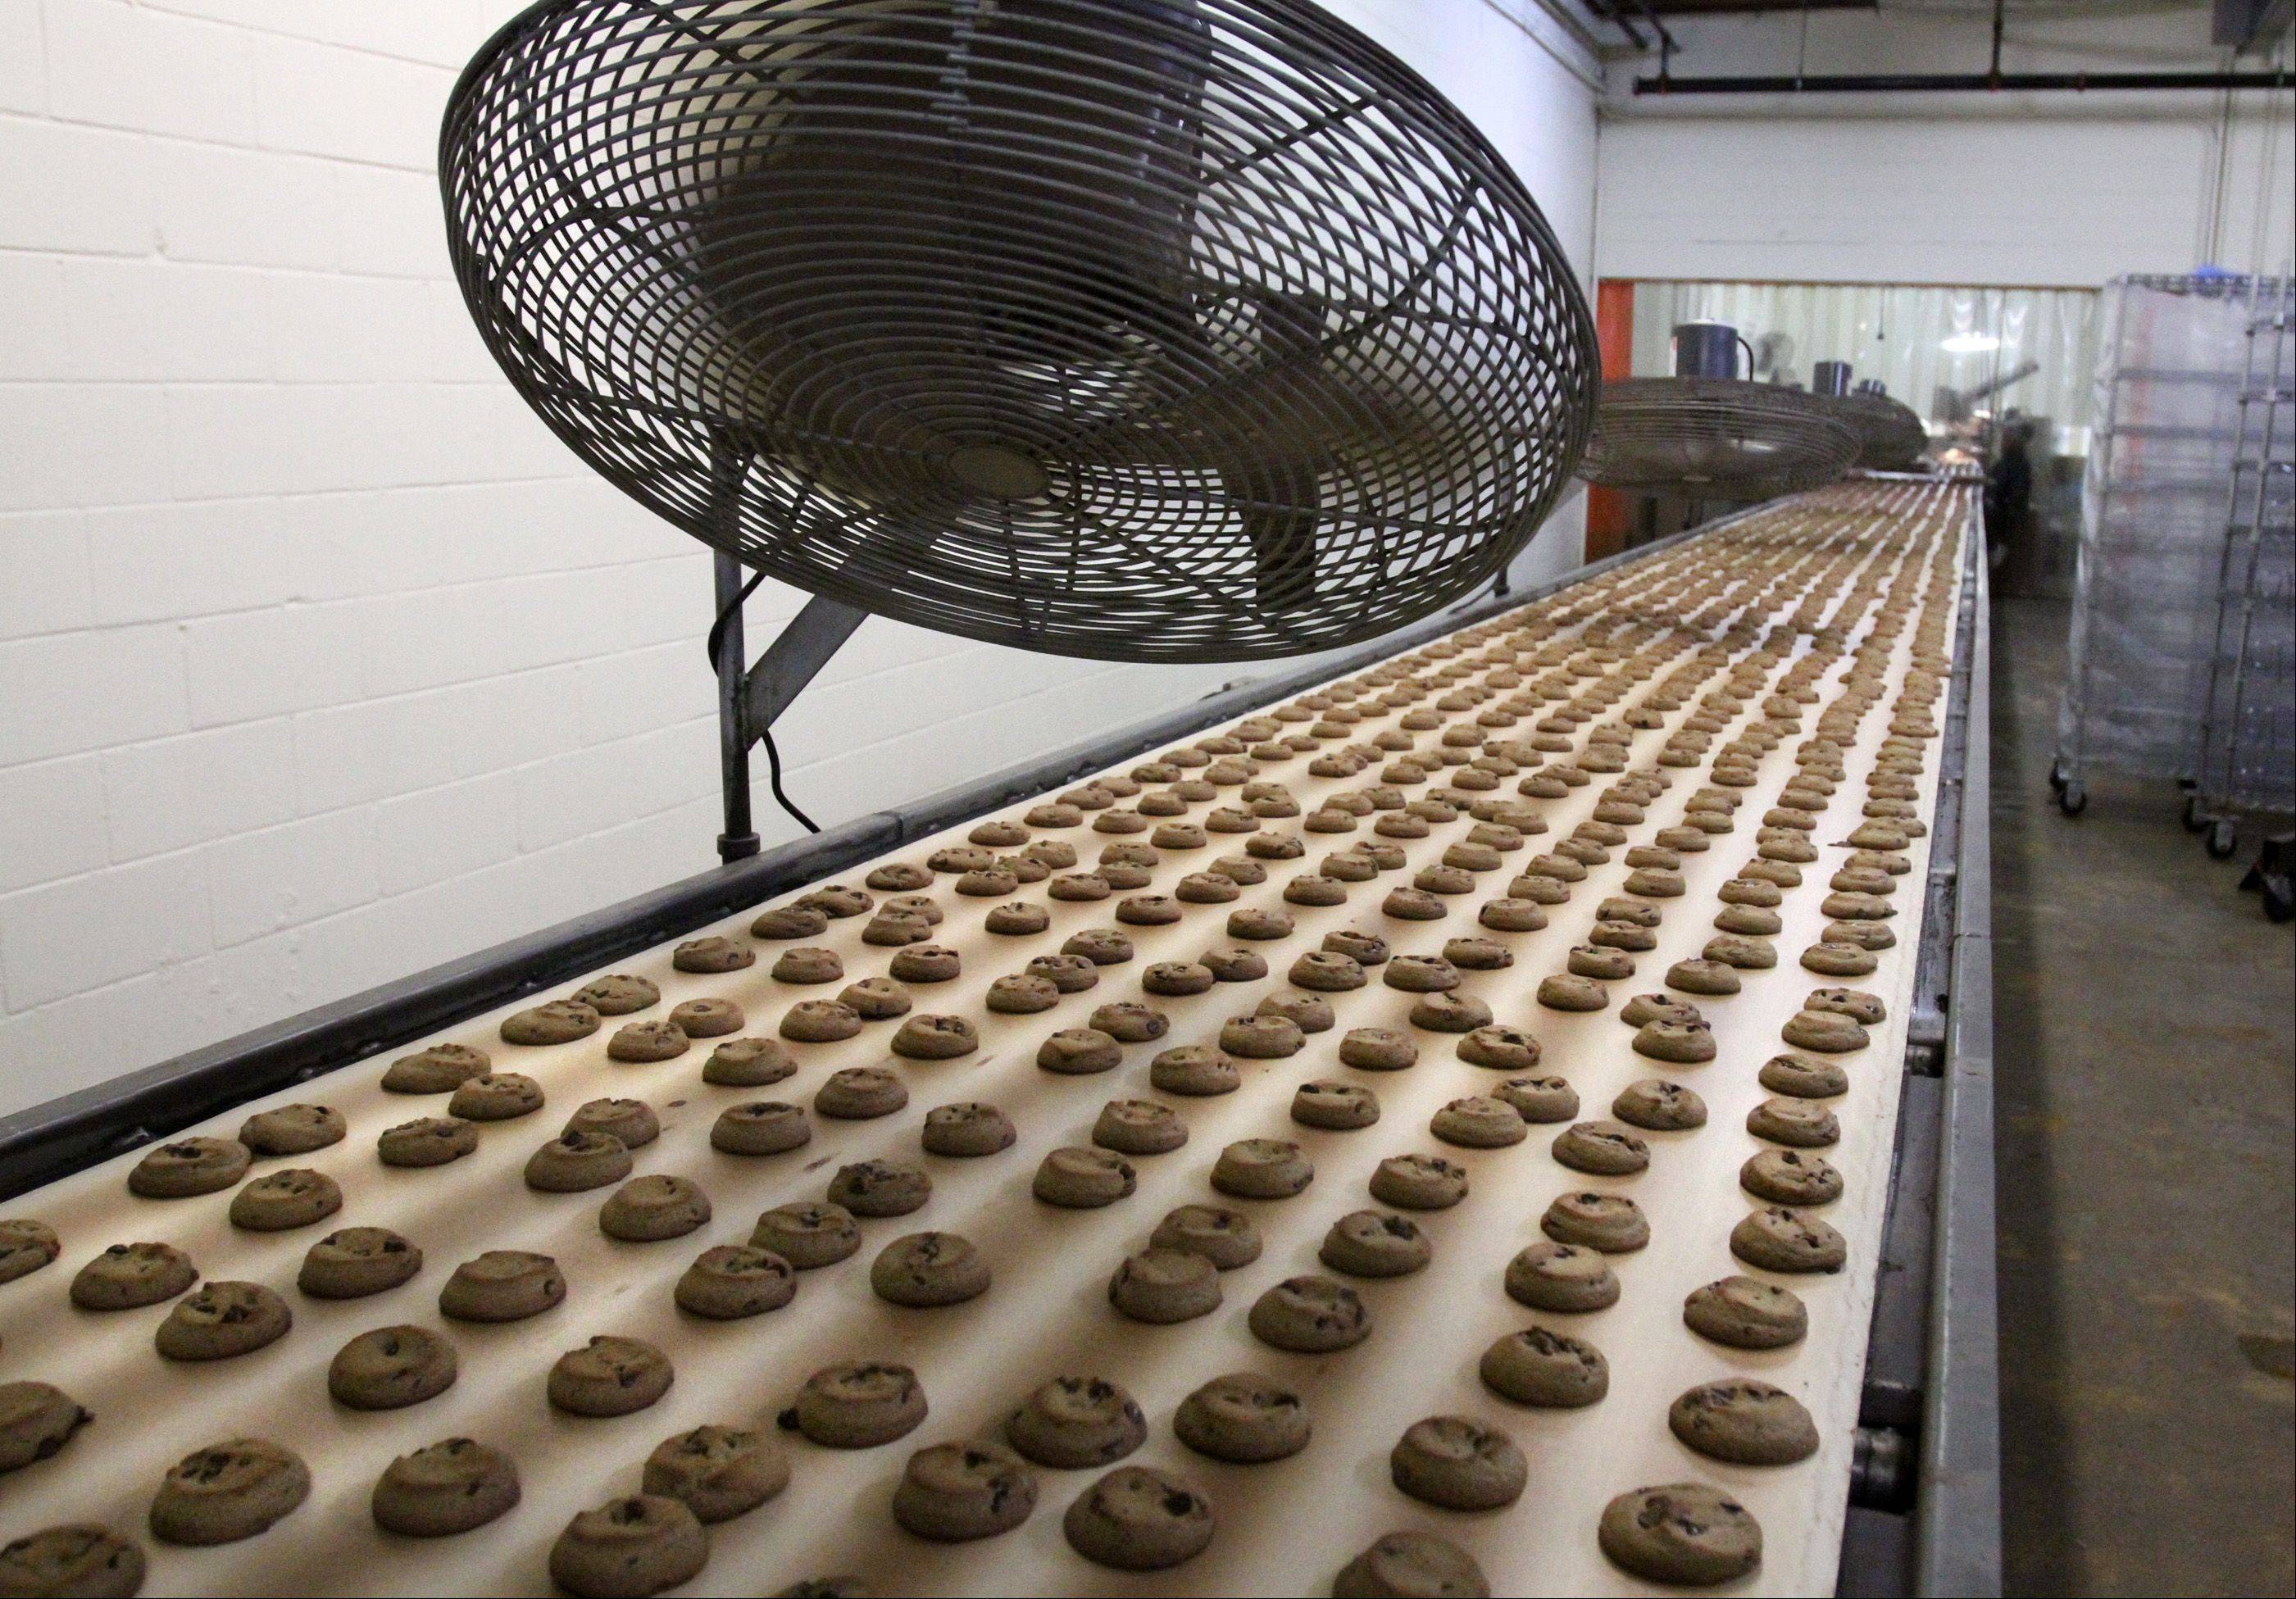 Chocolate chip cookies are cooled with fans before being packaged. Matt Pierce said no two cookies are the same shape so they have to be packaged by hand.